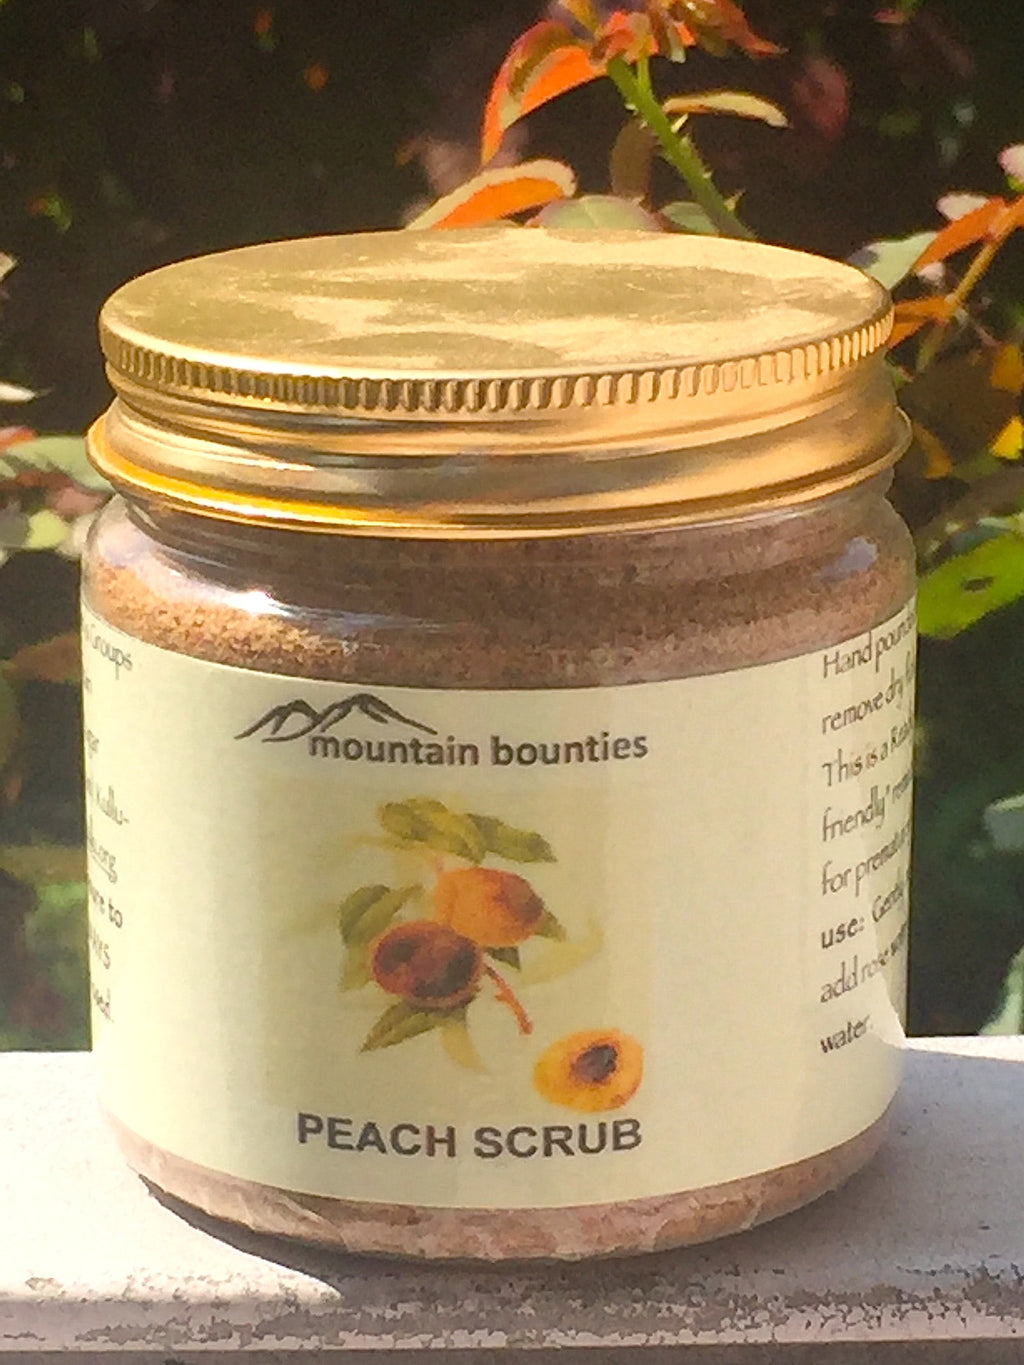 "Cold pressed, hand crafted from local flora in Himachal.  Hand pounded Peach kernel granules gently scrub the skin to remove dry flaky skin, and dead cells and balances skin moisture. This is a Ready to use exfoliant like traditional homemade ""skin friendly"" remedies. It has traces of peach oil, particularly beneficial for prematurely aged skin.  No chemicals, no preservatives."